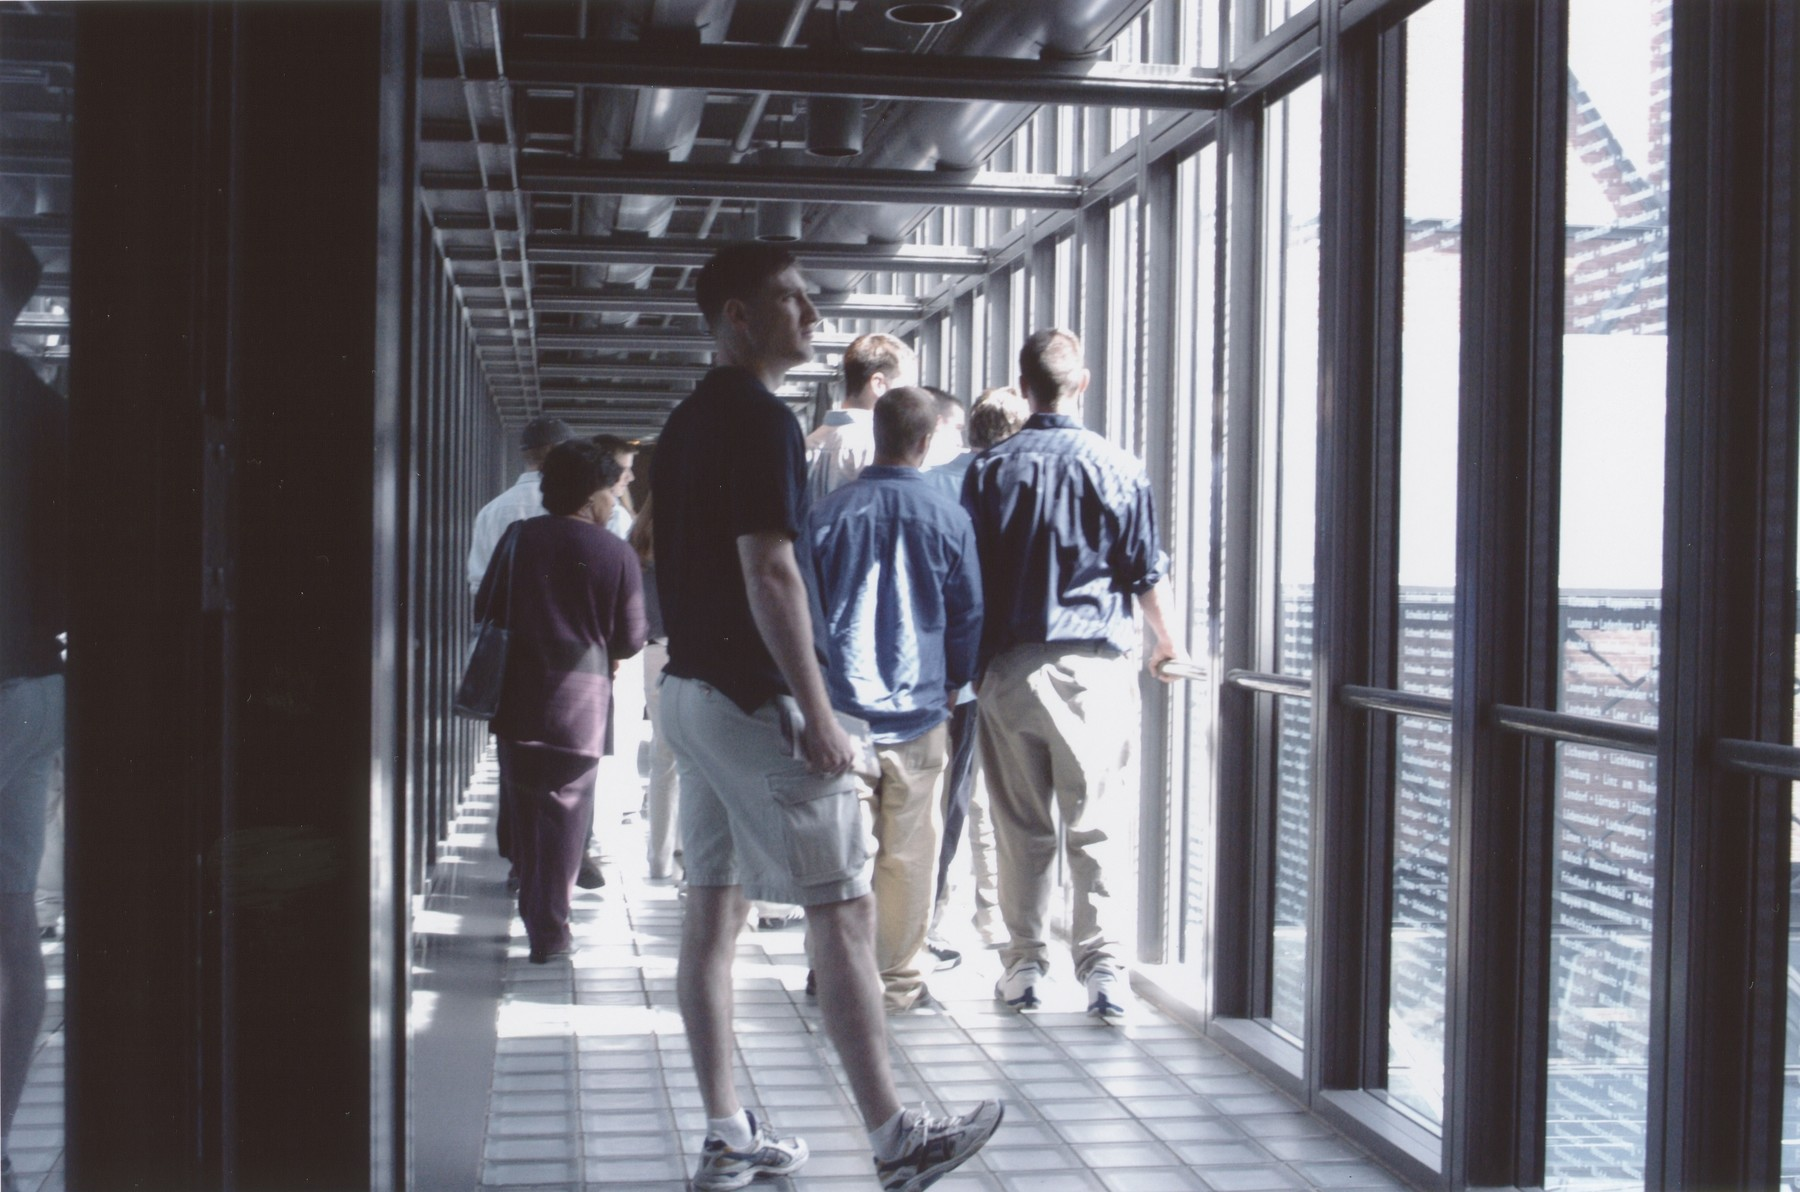 A group of students crosses the glass bridge etched with the names of lost Jewish communities in the permanant exhibition of the U.S. Holocaust Memorial Museum.